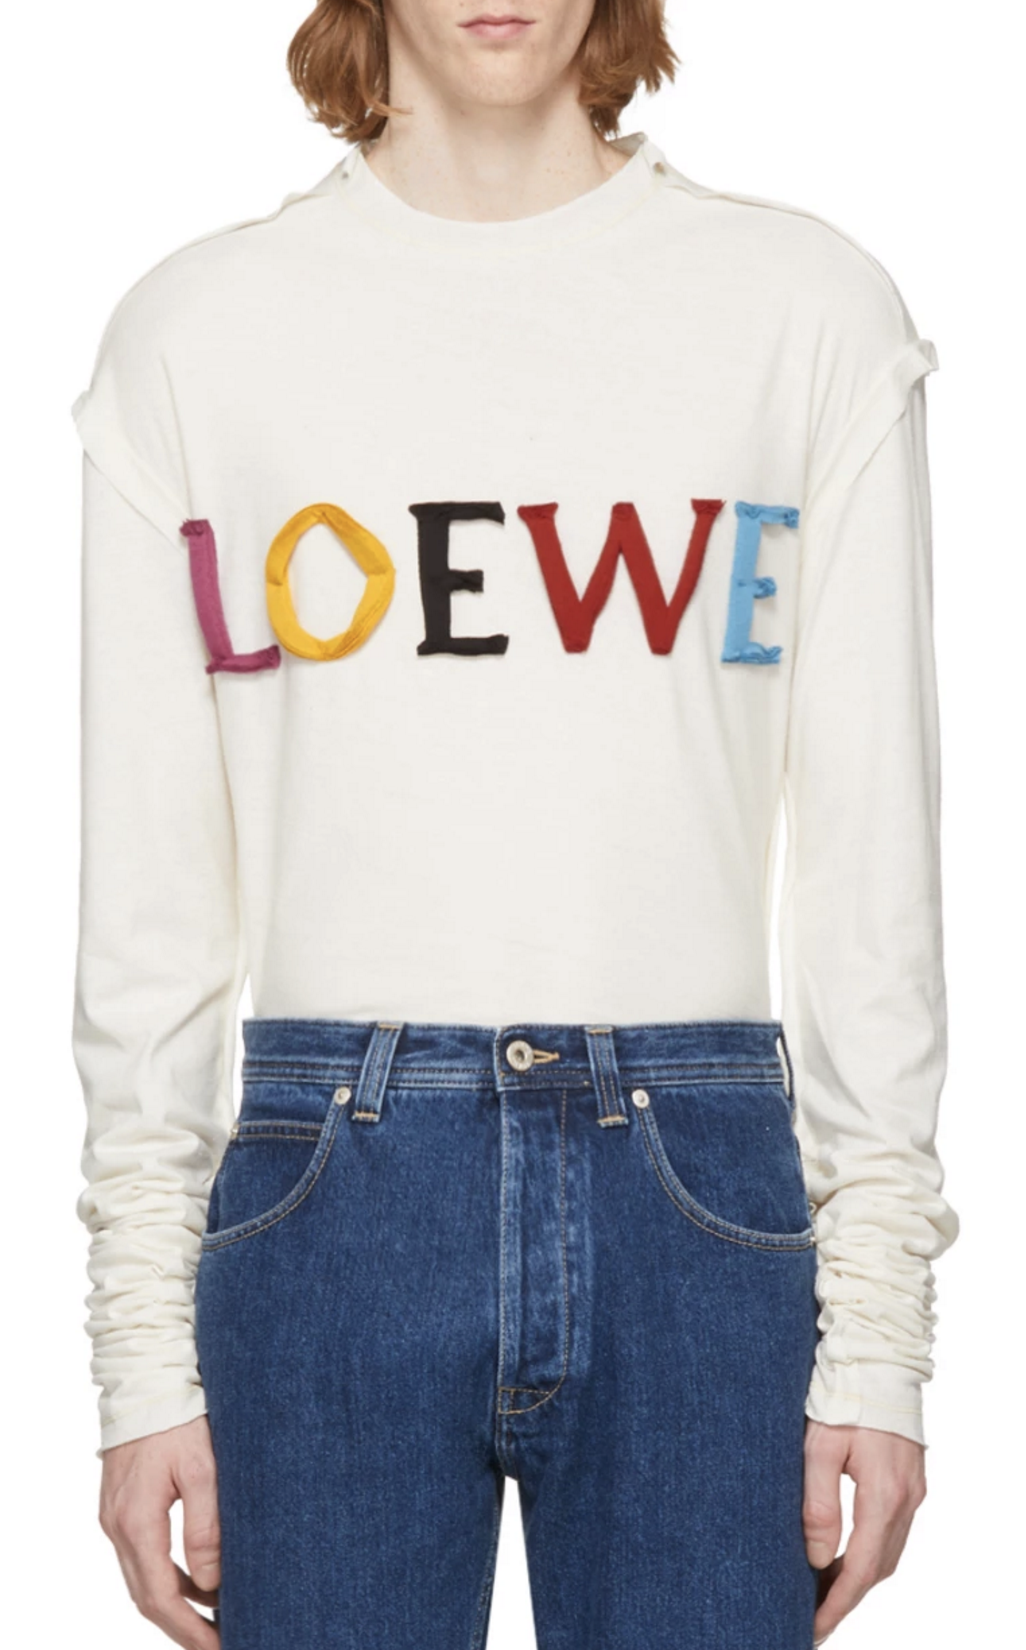 bf0cff85 Loewe Off-White Long Sleeve 'Loewe Colors' T-Shirt from SSENSE (men, style,  fashion, clothing, shopping, recommendations, stylish, menswear, male, ...